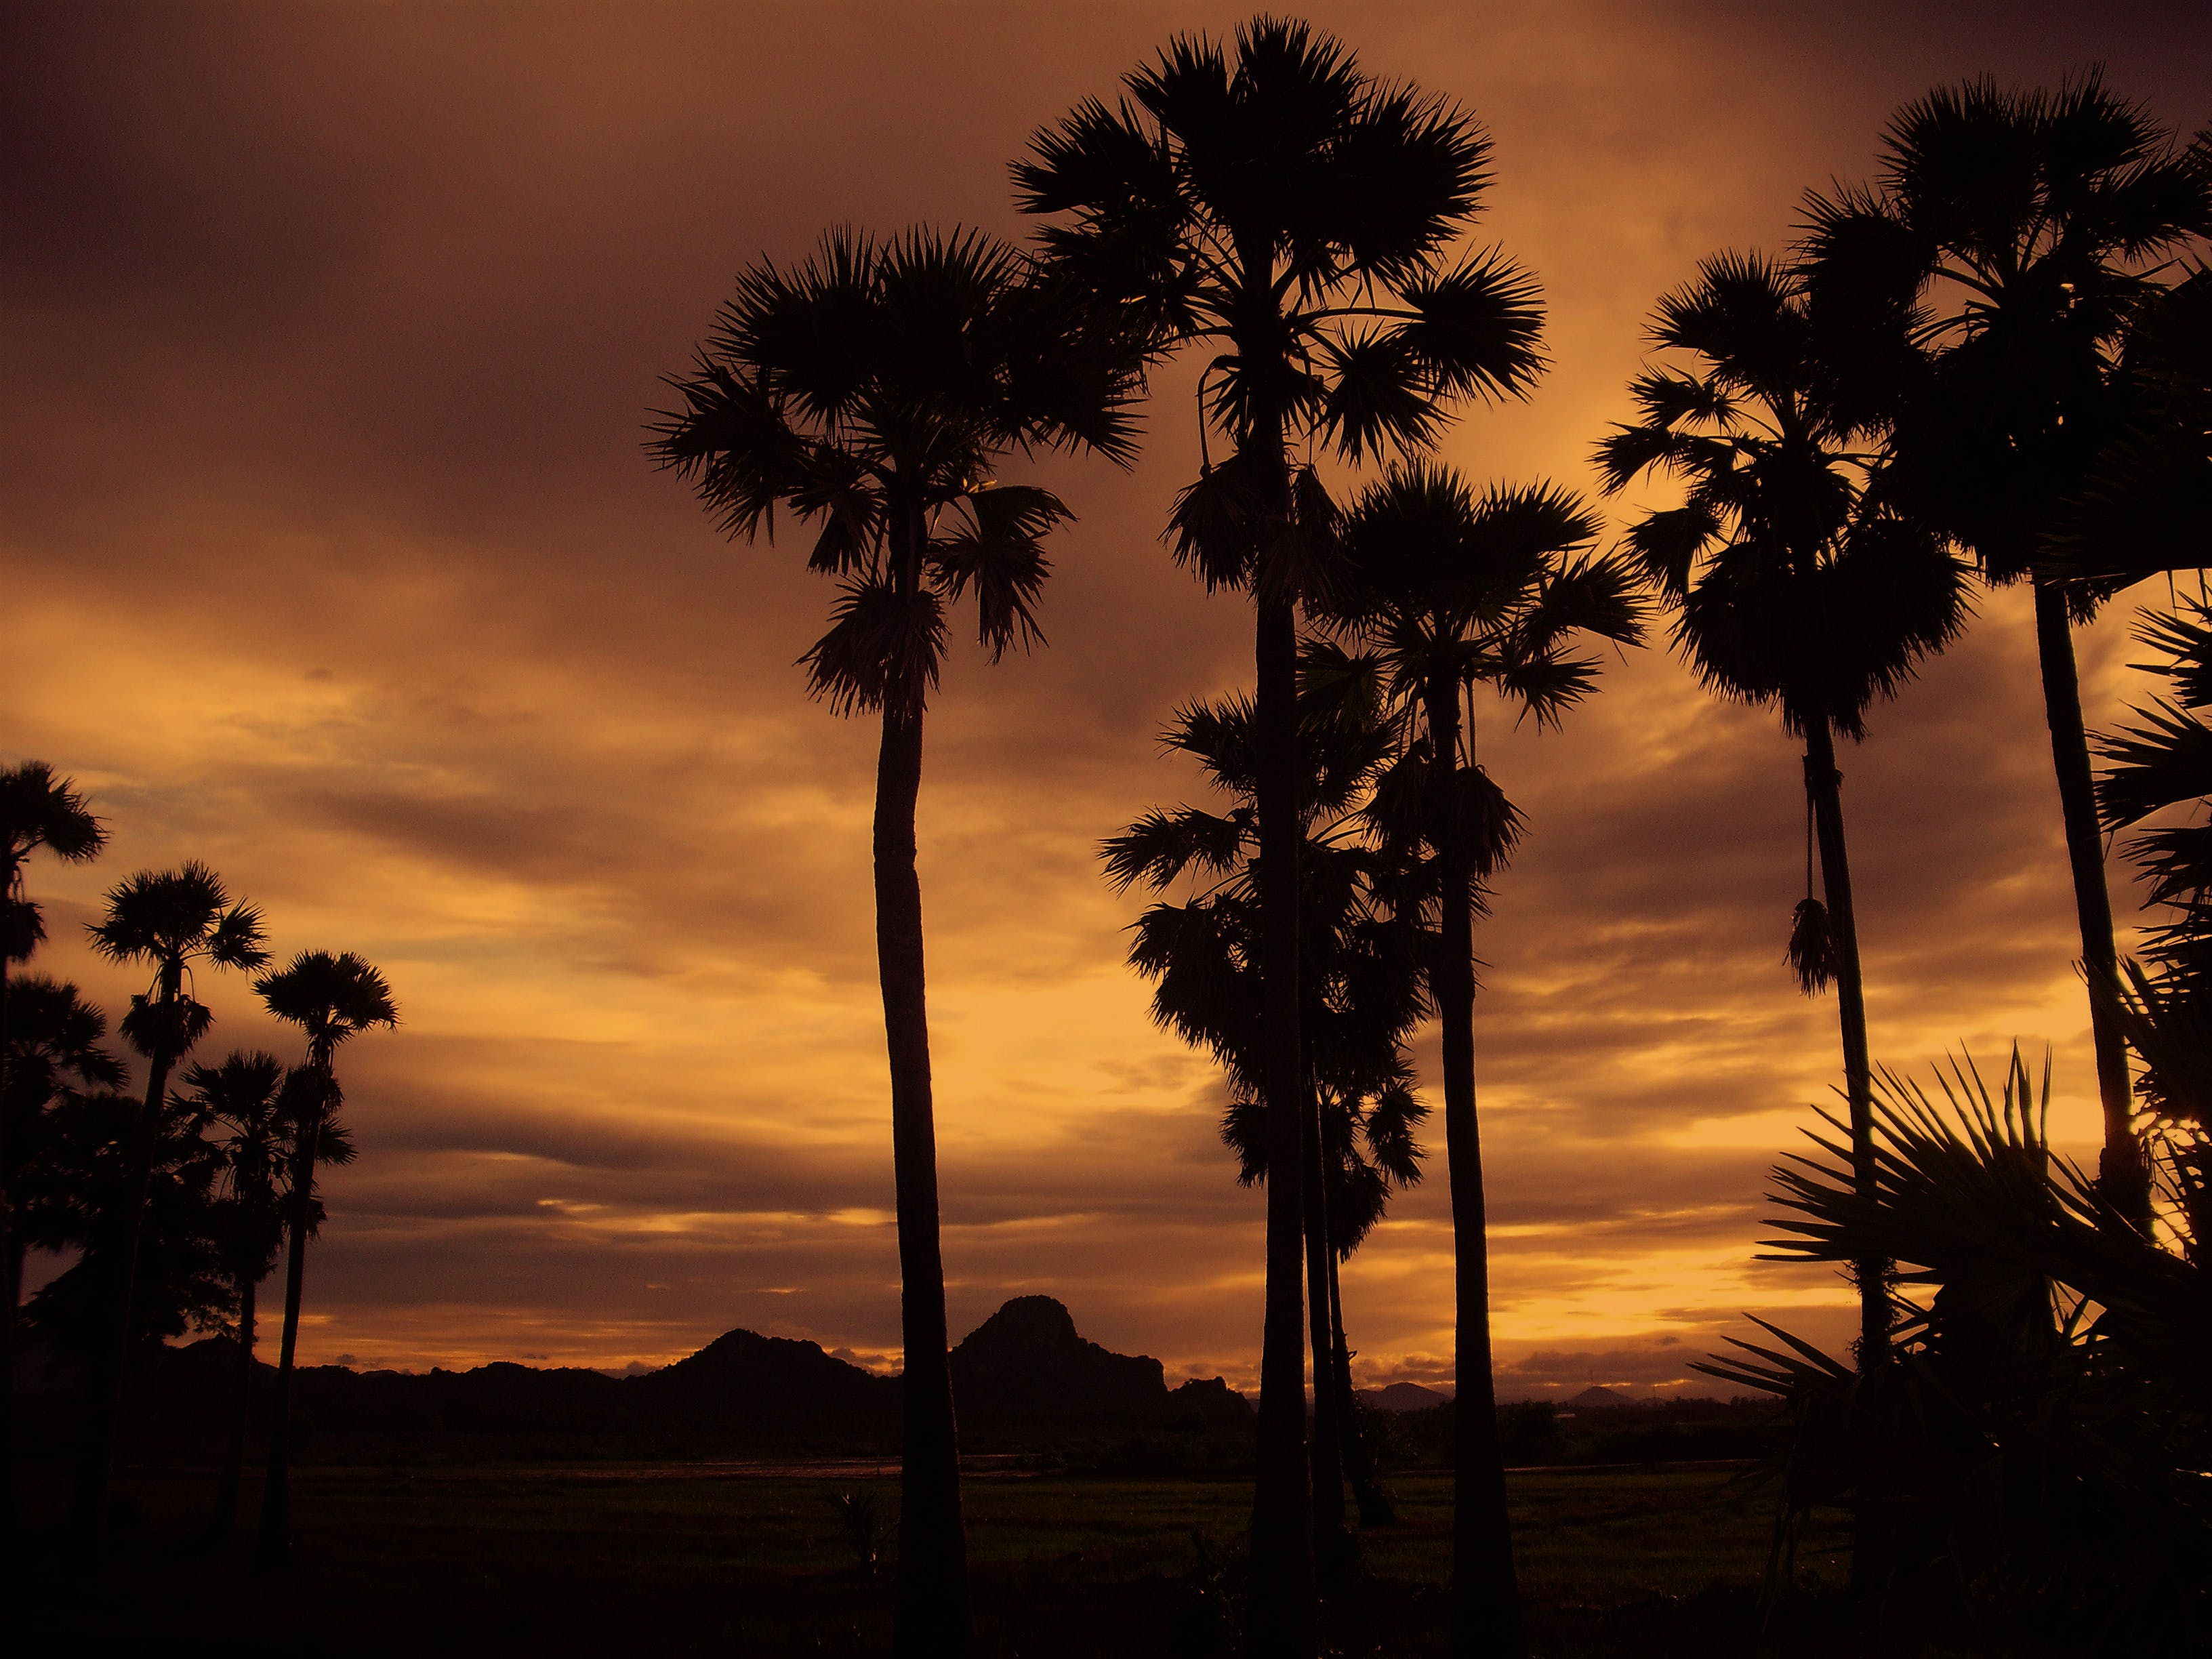 Silhouette of Coconut Tree during Cloudy Day